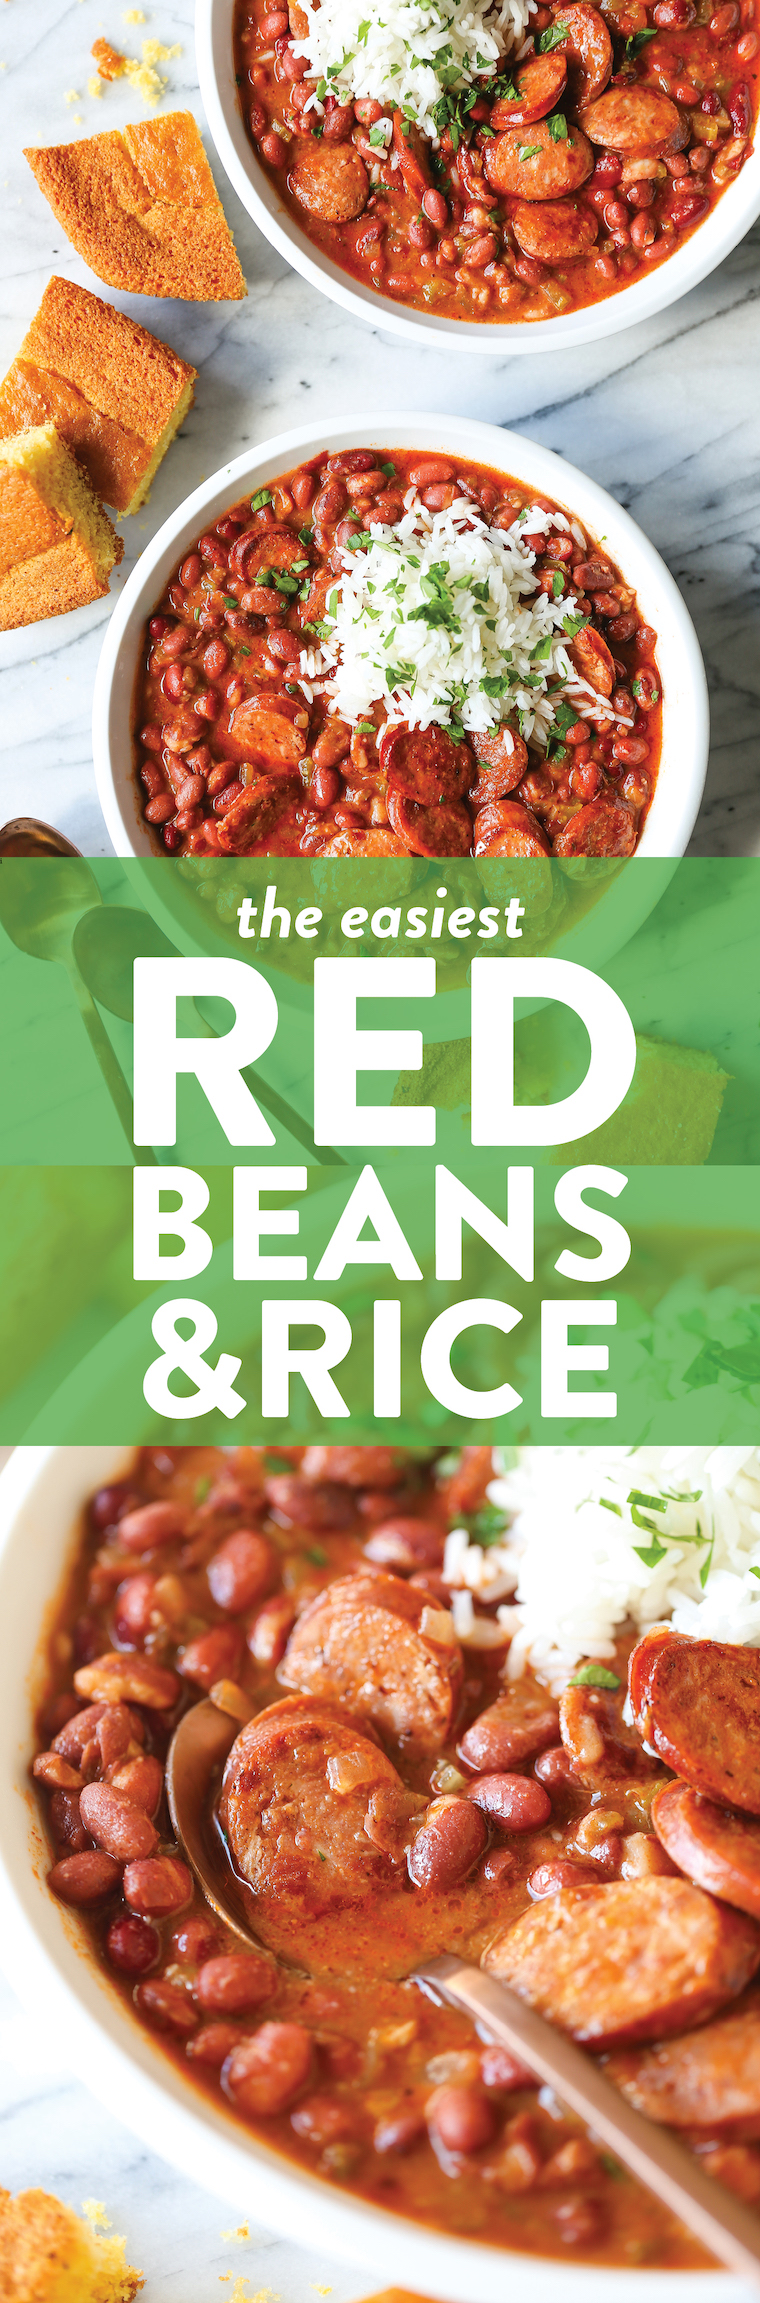 Red Beans and Rice - So thick, so creamy and so flavorful! The beans are cooked just right - perfectly tender, served with rice and smoky andouille sausage.